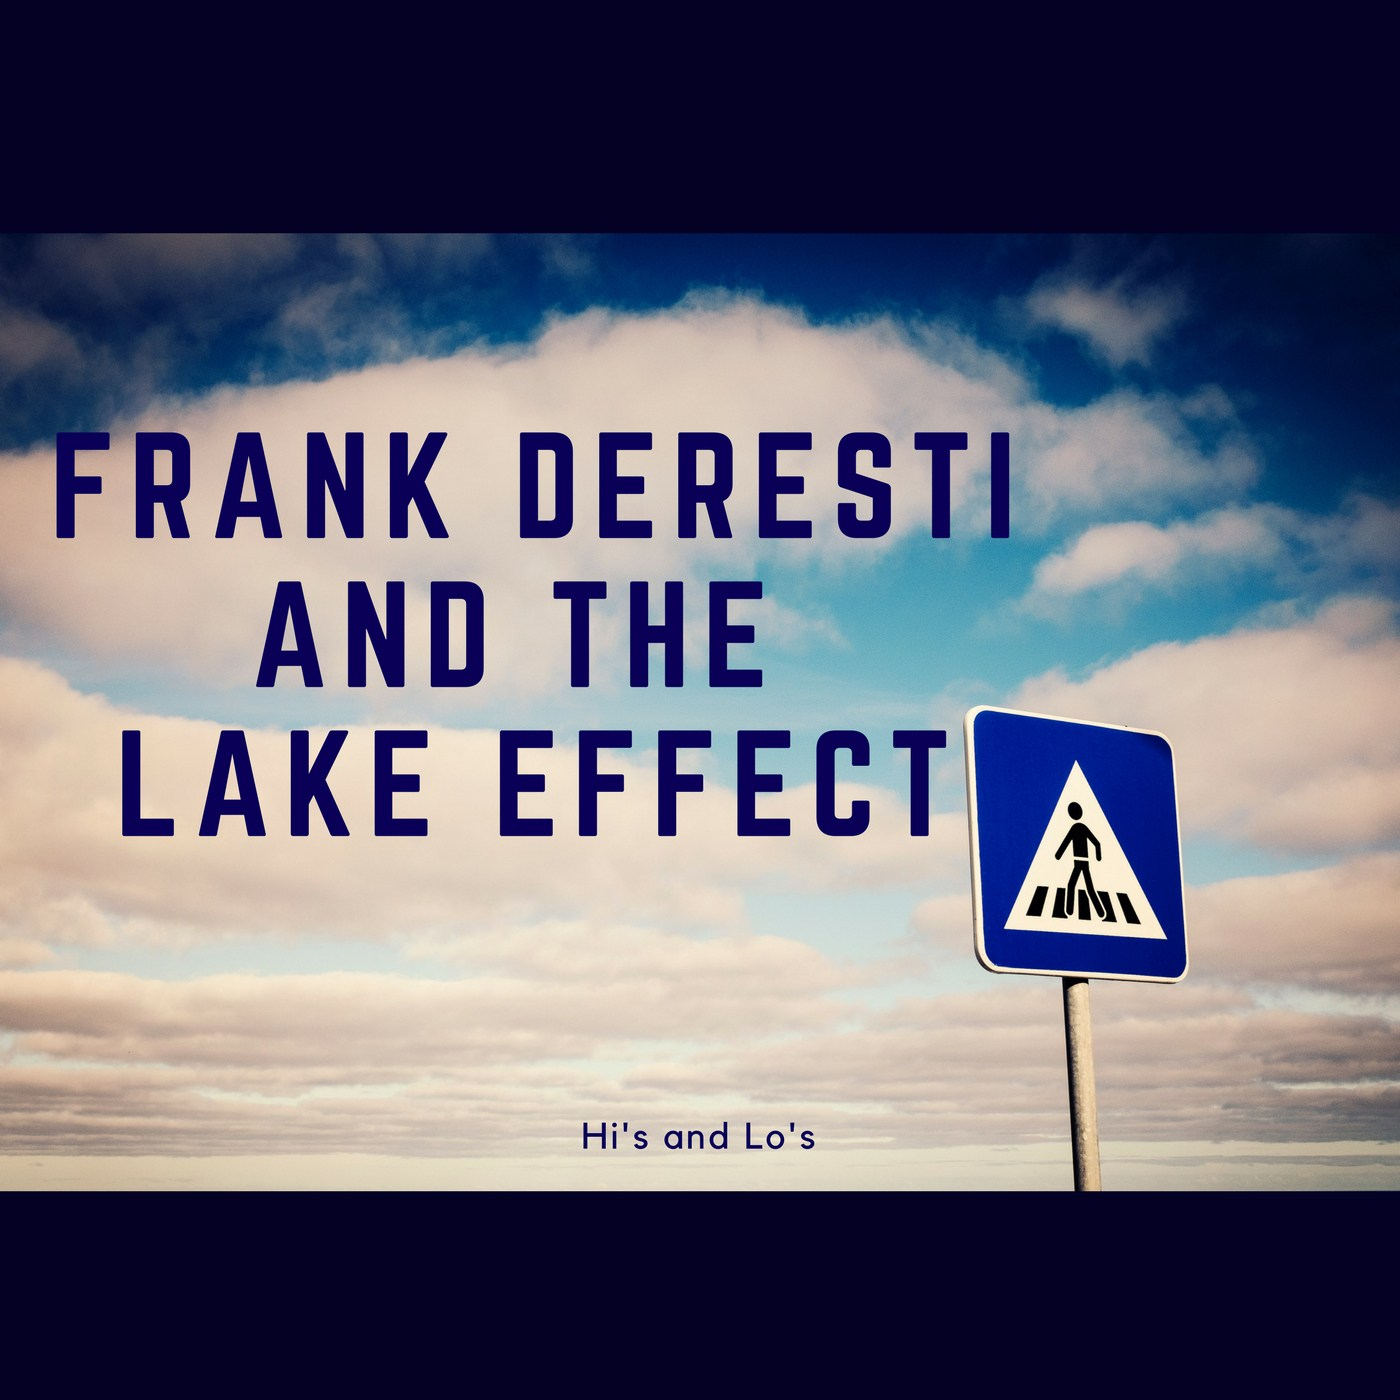 Frank Deresti and the Lake Effect album Hi's and Lo's